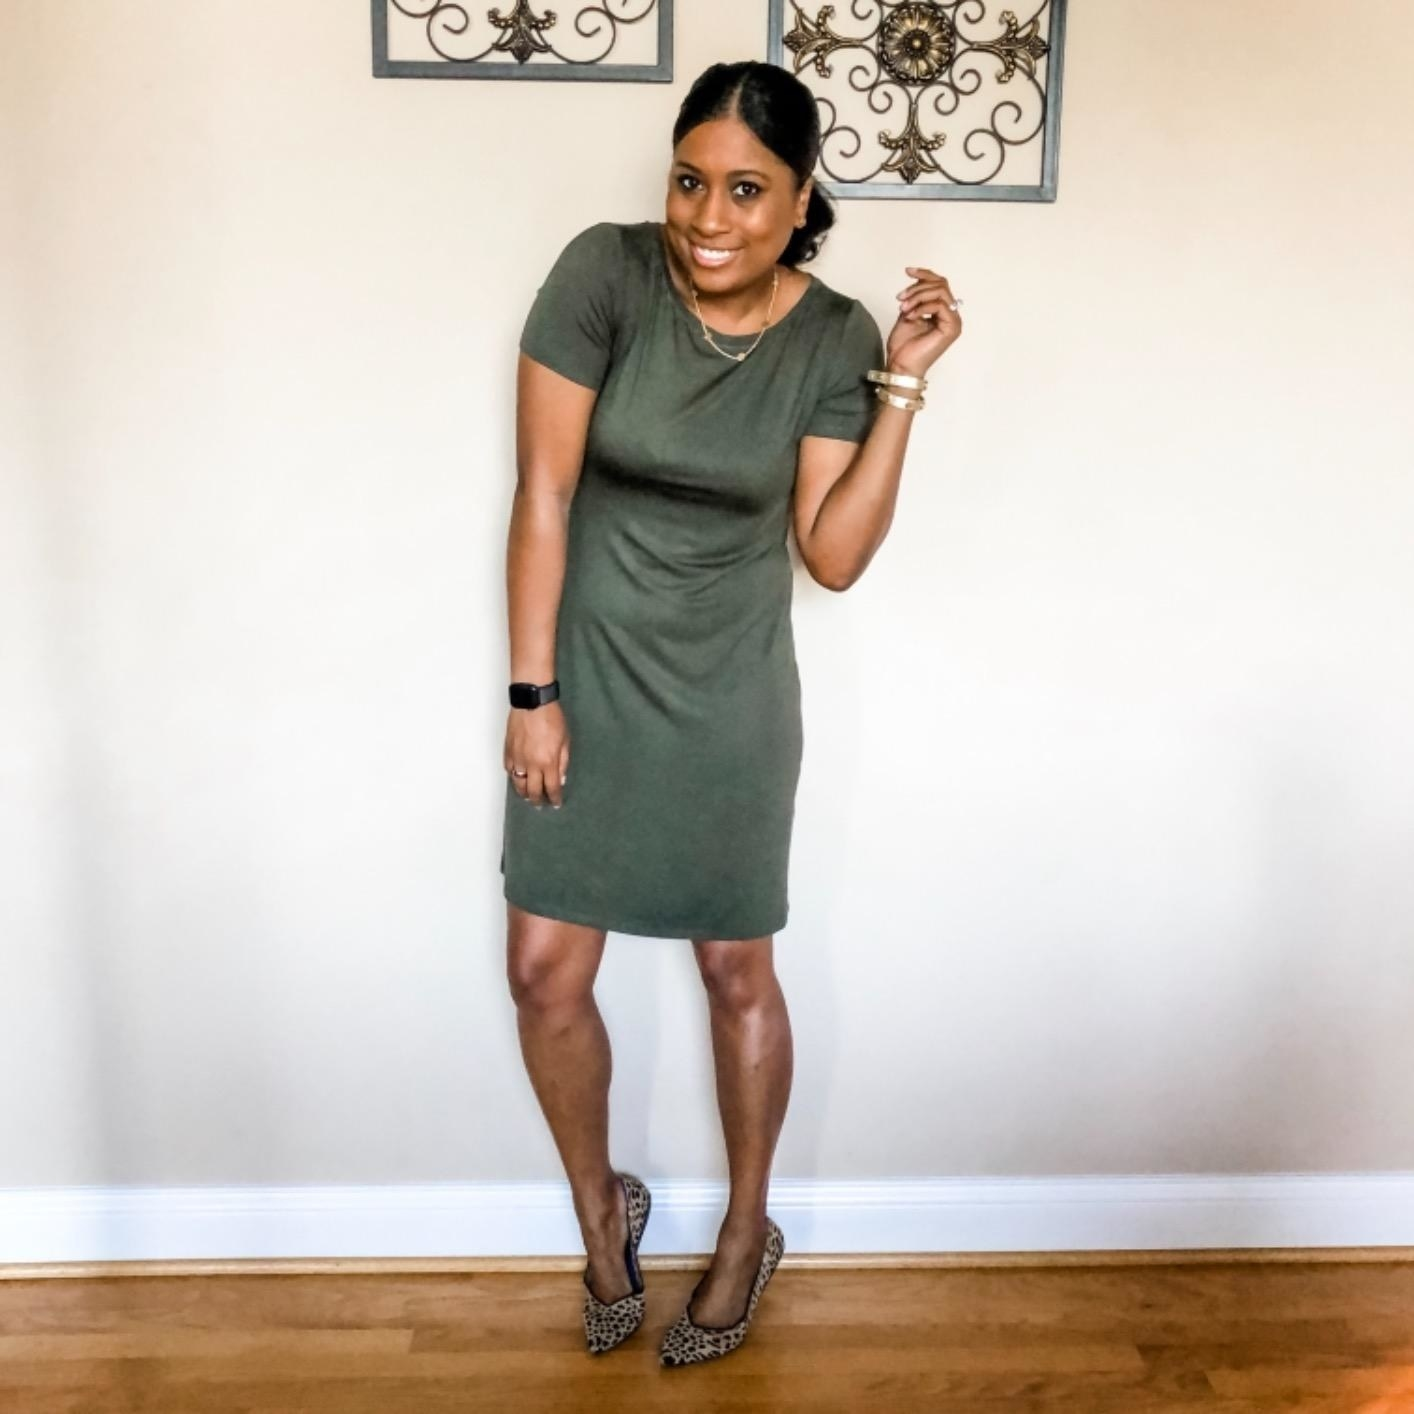 Reviewer wearing the dress in green